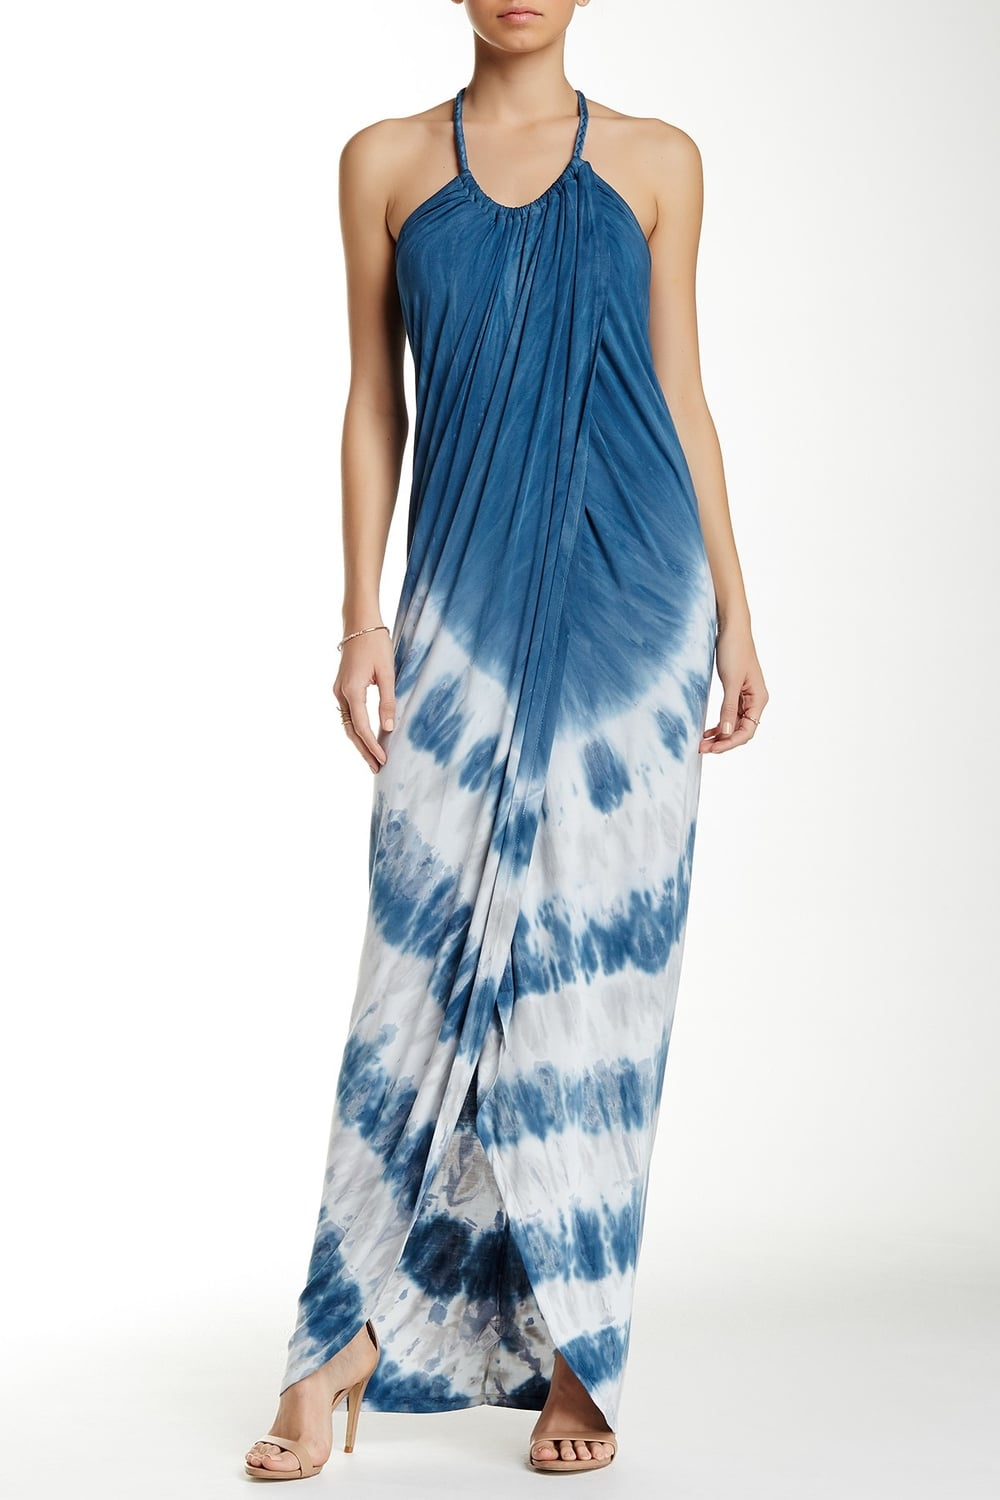 Young Fabulous & Broke Lexi Dress. Nordstrom Rack. Was: $264 Now: $129.